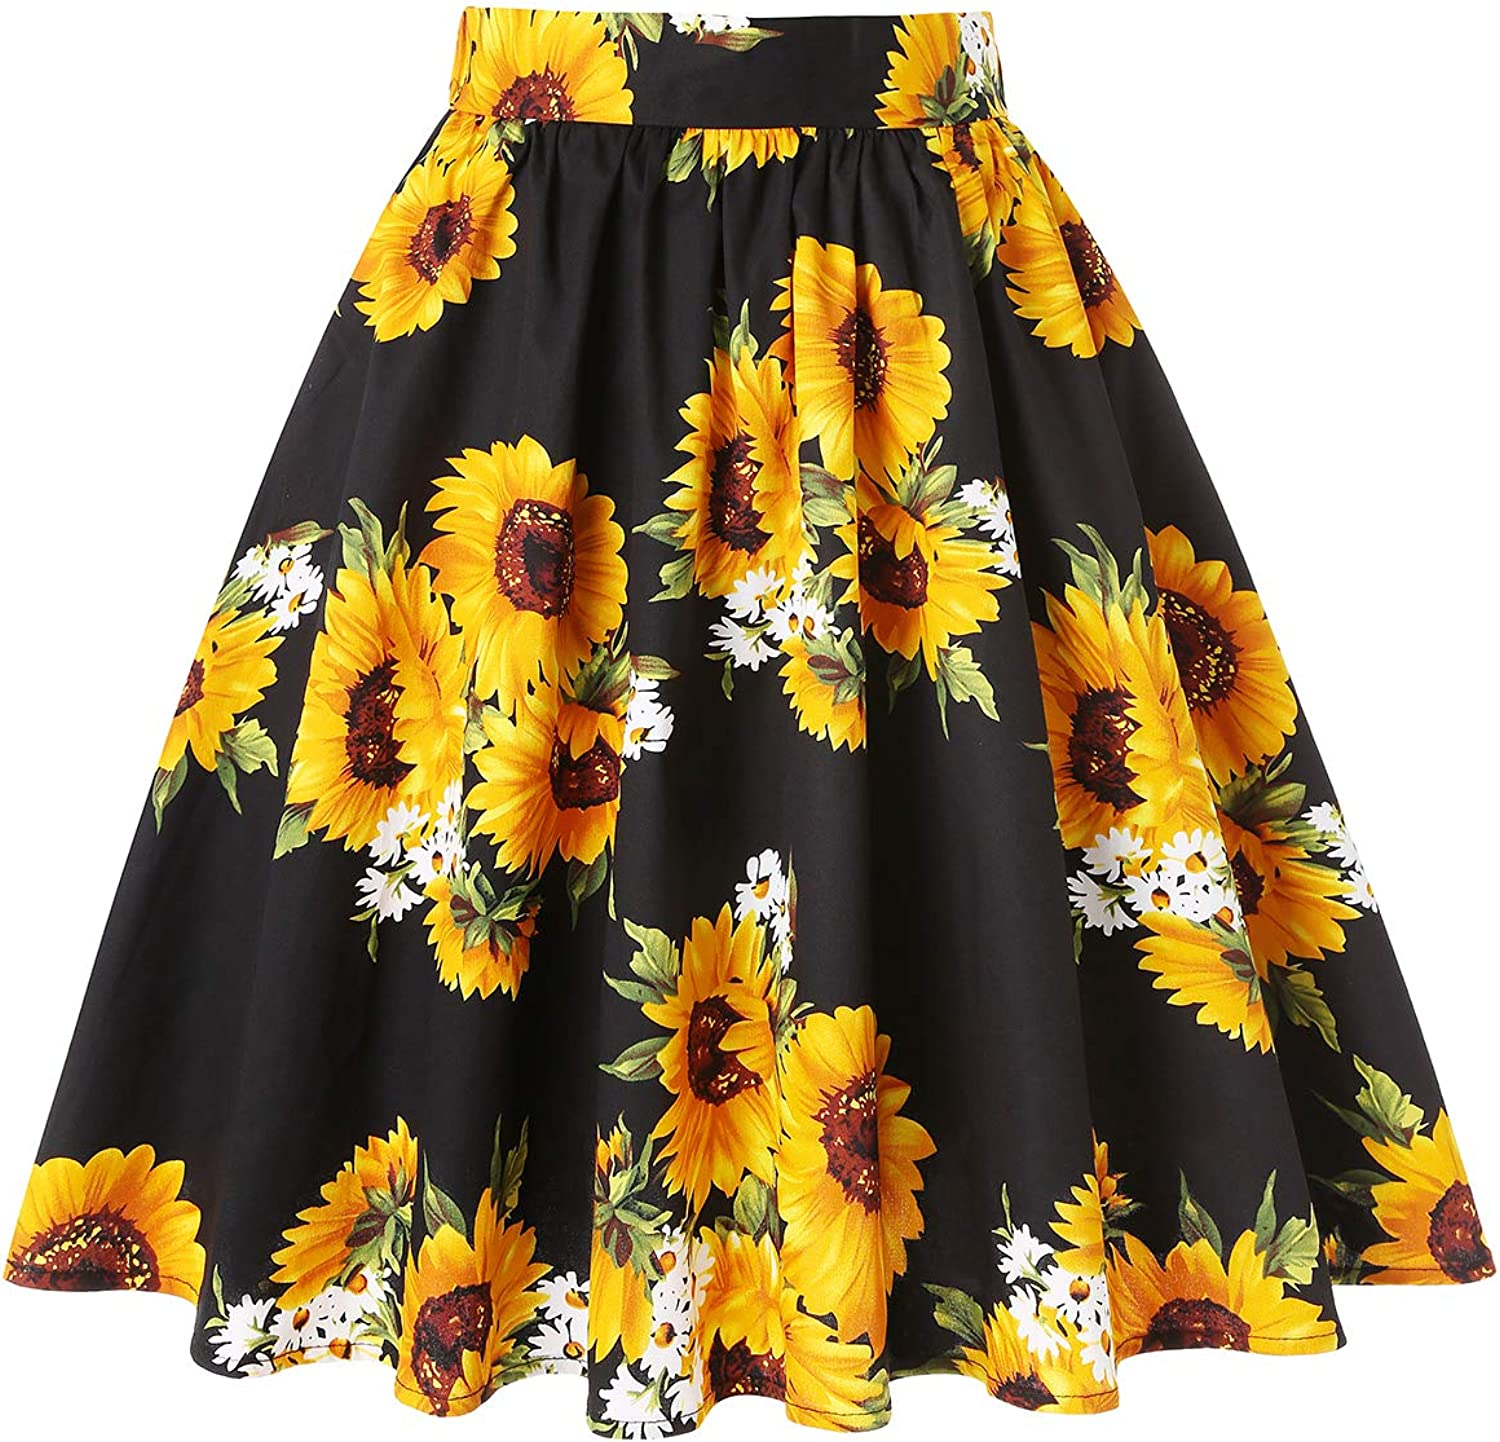 MINTLIMIT 1950's Vintage Pleated Skirt A-line Retro Floral Printed Midi Skirts with Pockets